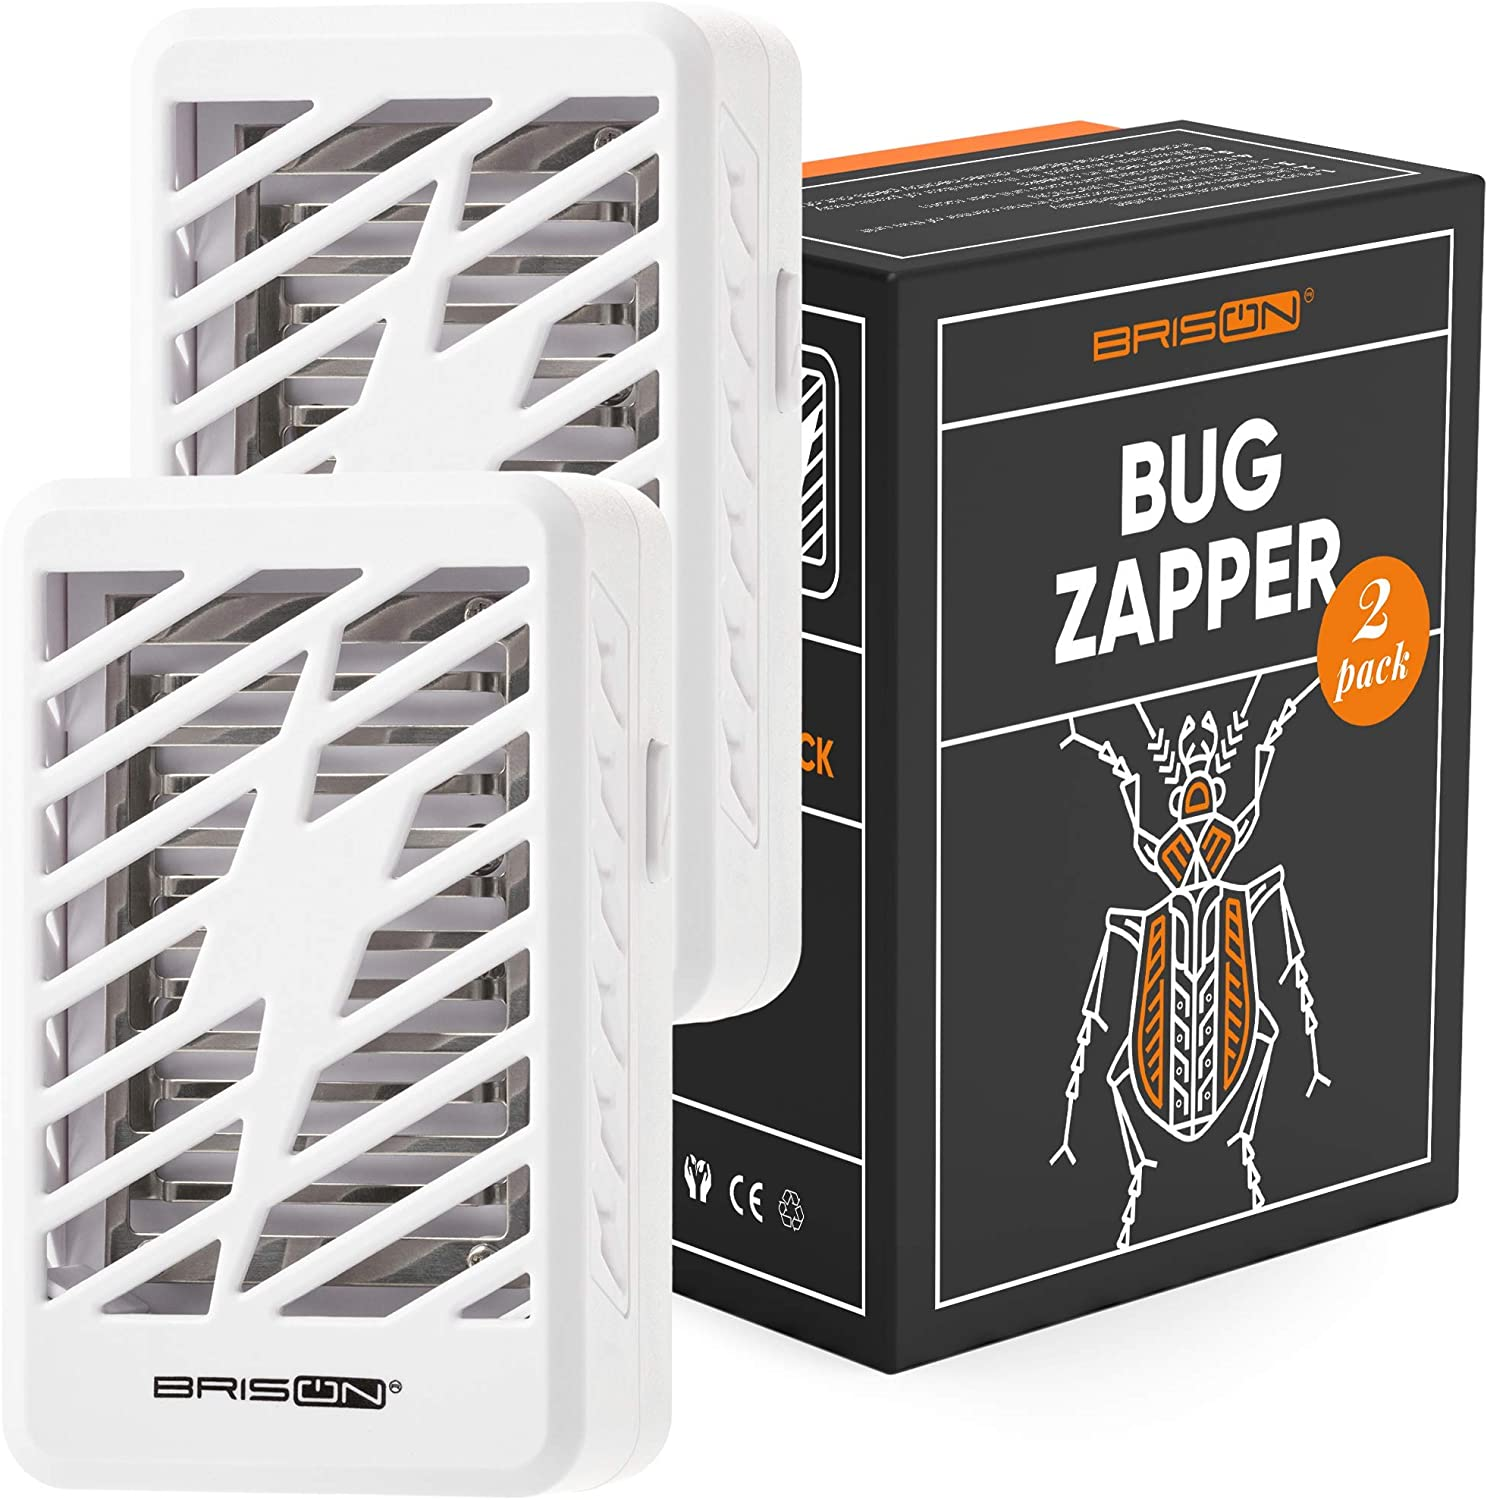 Electronic Bug Max 64% OFF Sale Special Price Zapper - Mosquito Killer Lamp Trap Fly Electric